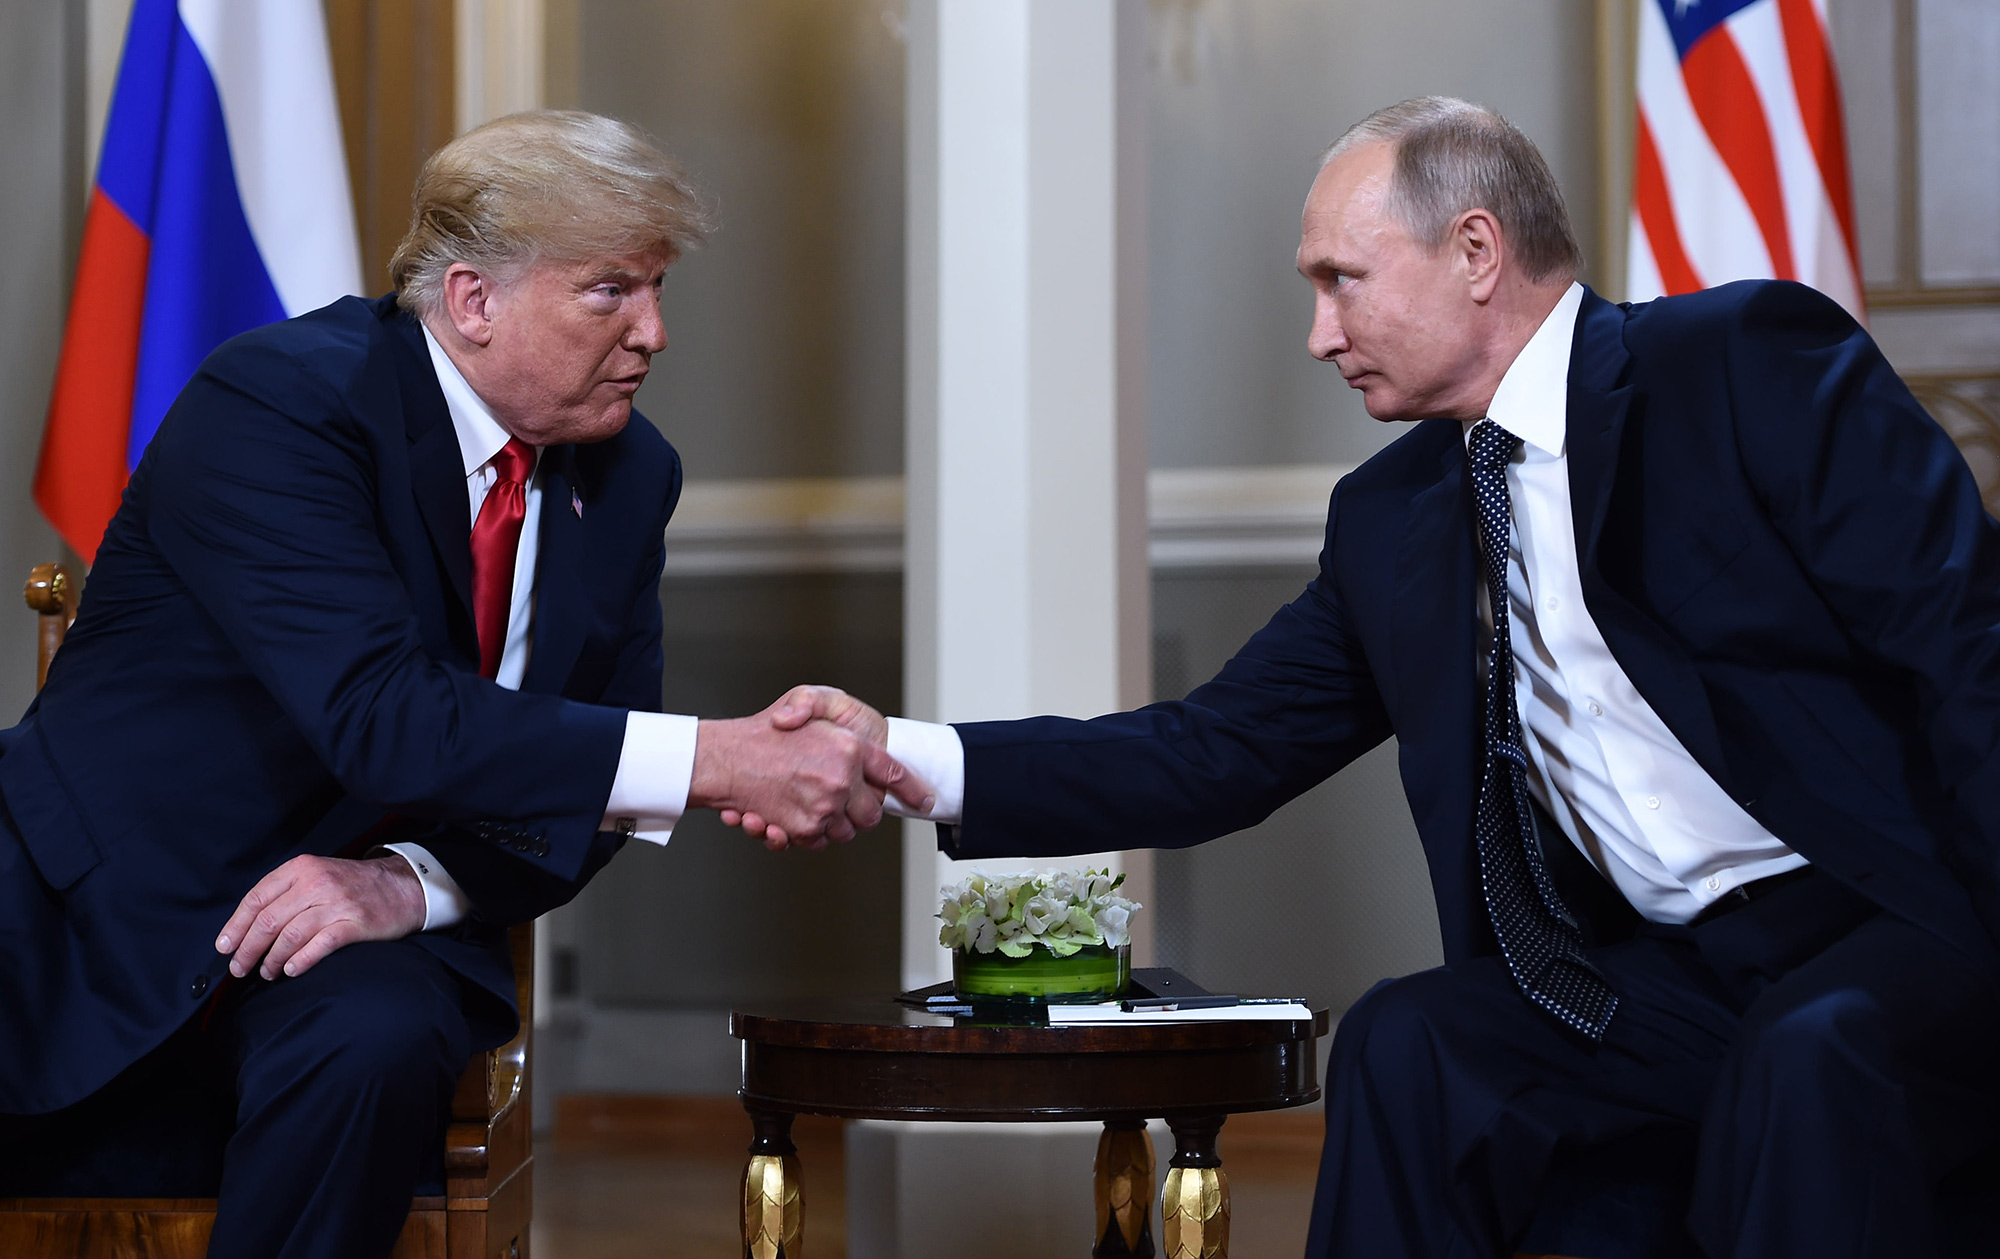 Trump and Putin May Meet Again in Helsinki, Finnish Newspaper Says